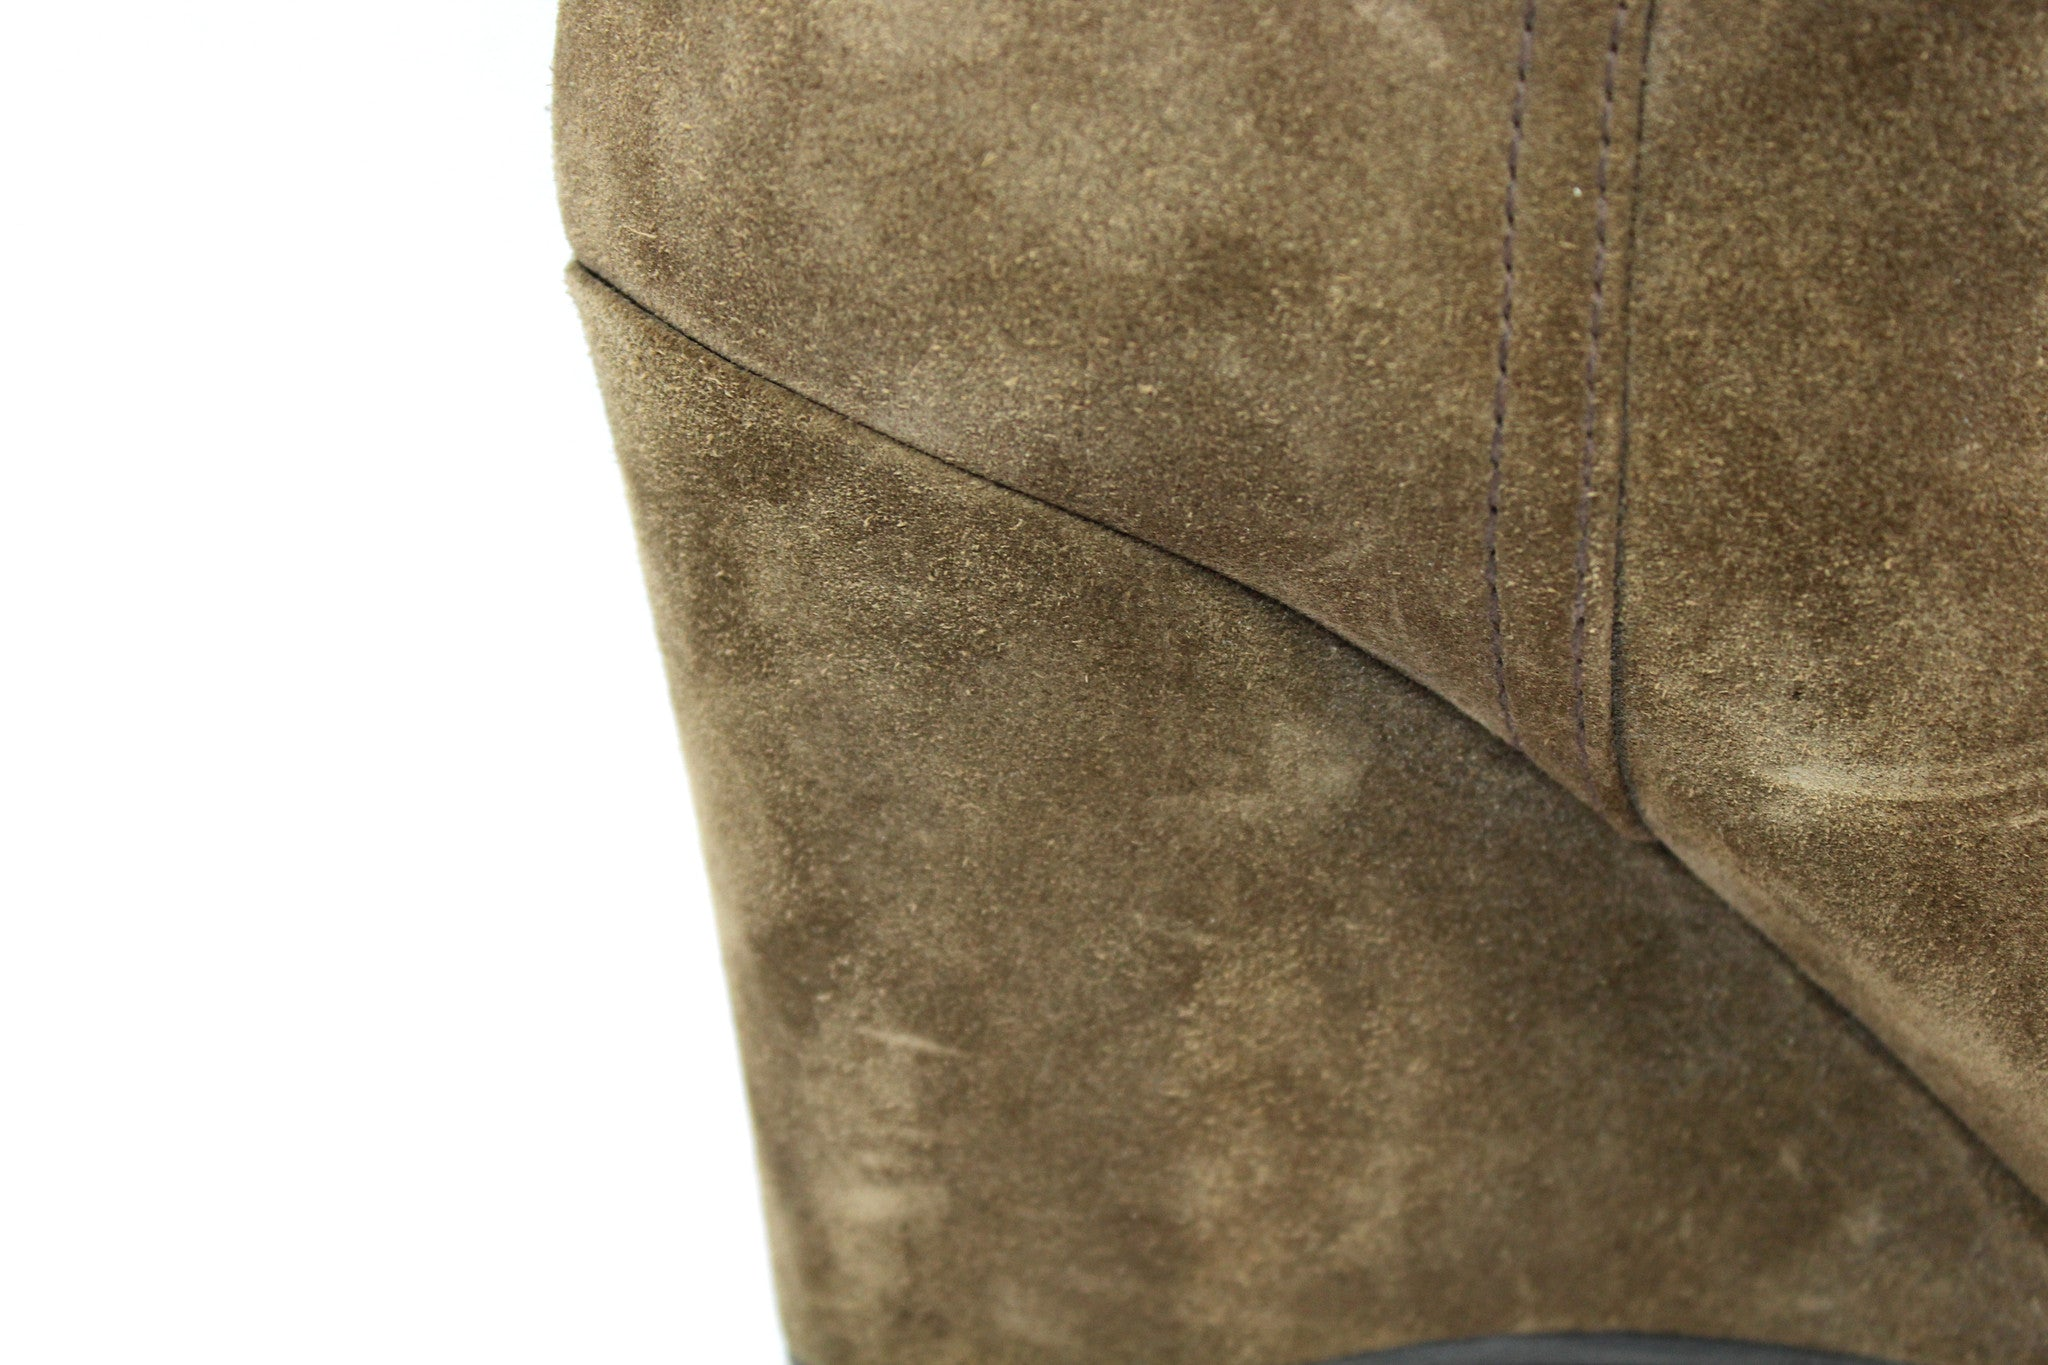 Prada Suede Taupe Wedge Boots (Size 38) - Encore Consignment - 8